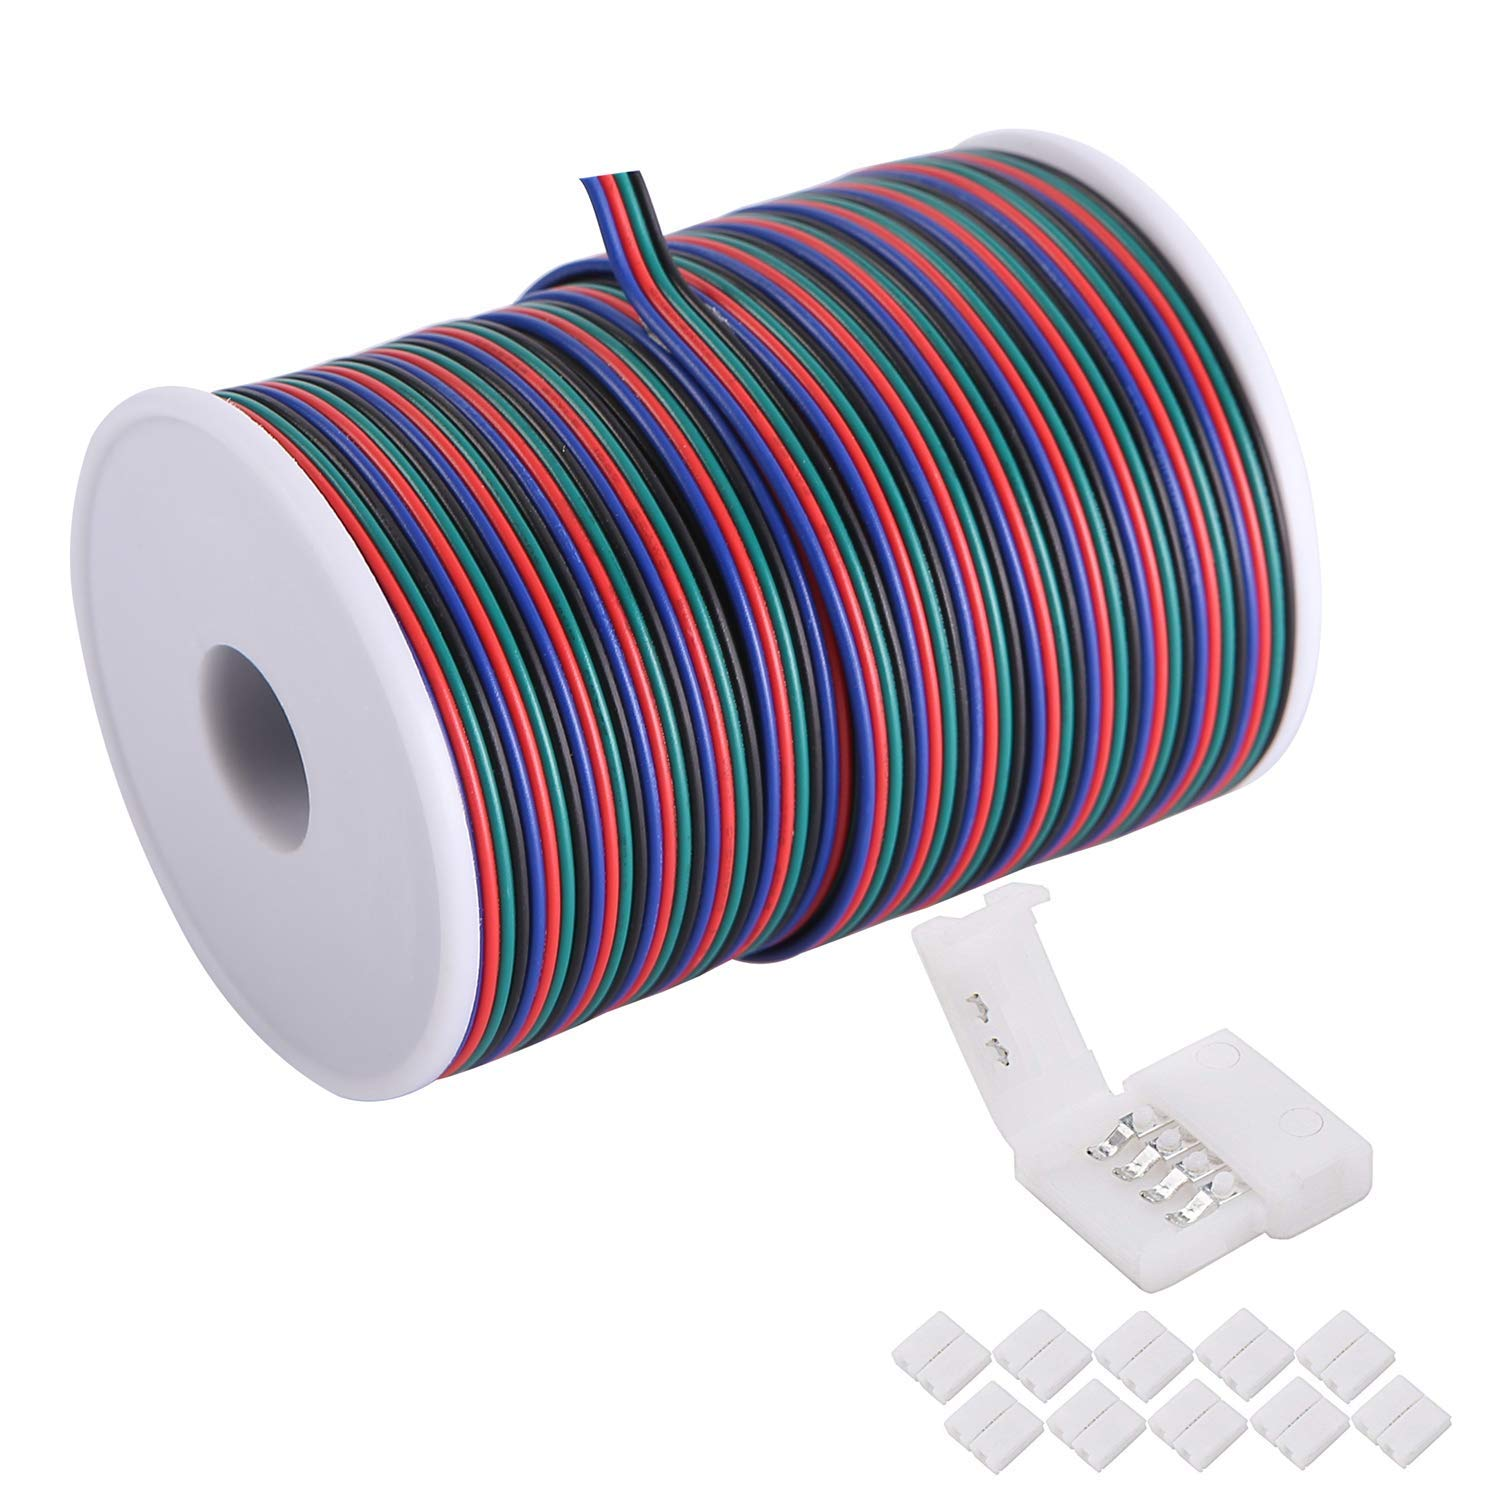 100Ft(30.5M) 22 Awg 4Pin RGB Wire Extension Cable with Spool, Led Lights Wires Strip Extend Wire for 5050 3528, with 8Pcs RGB Led Strip Connectors